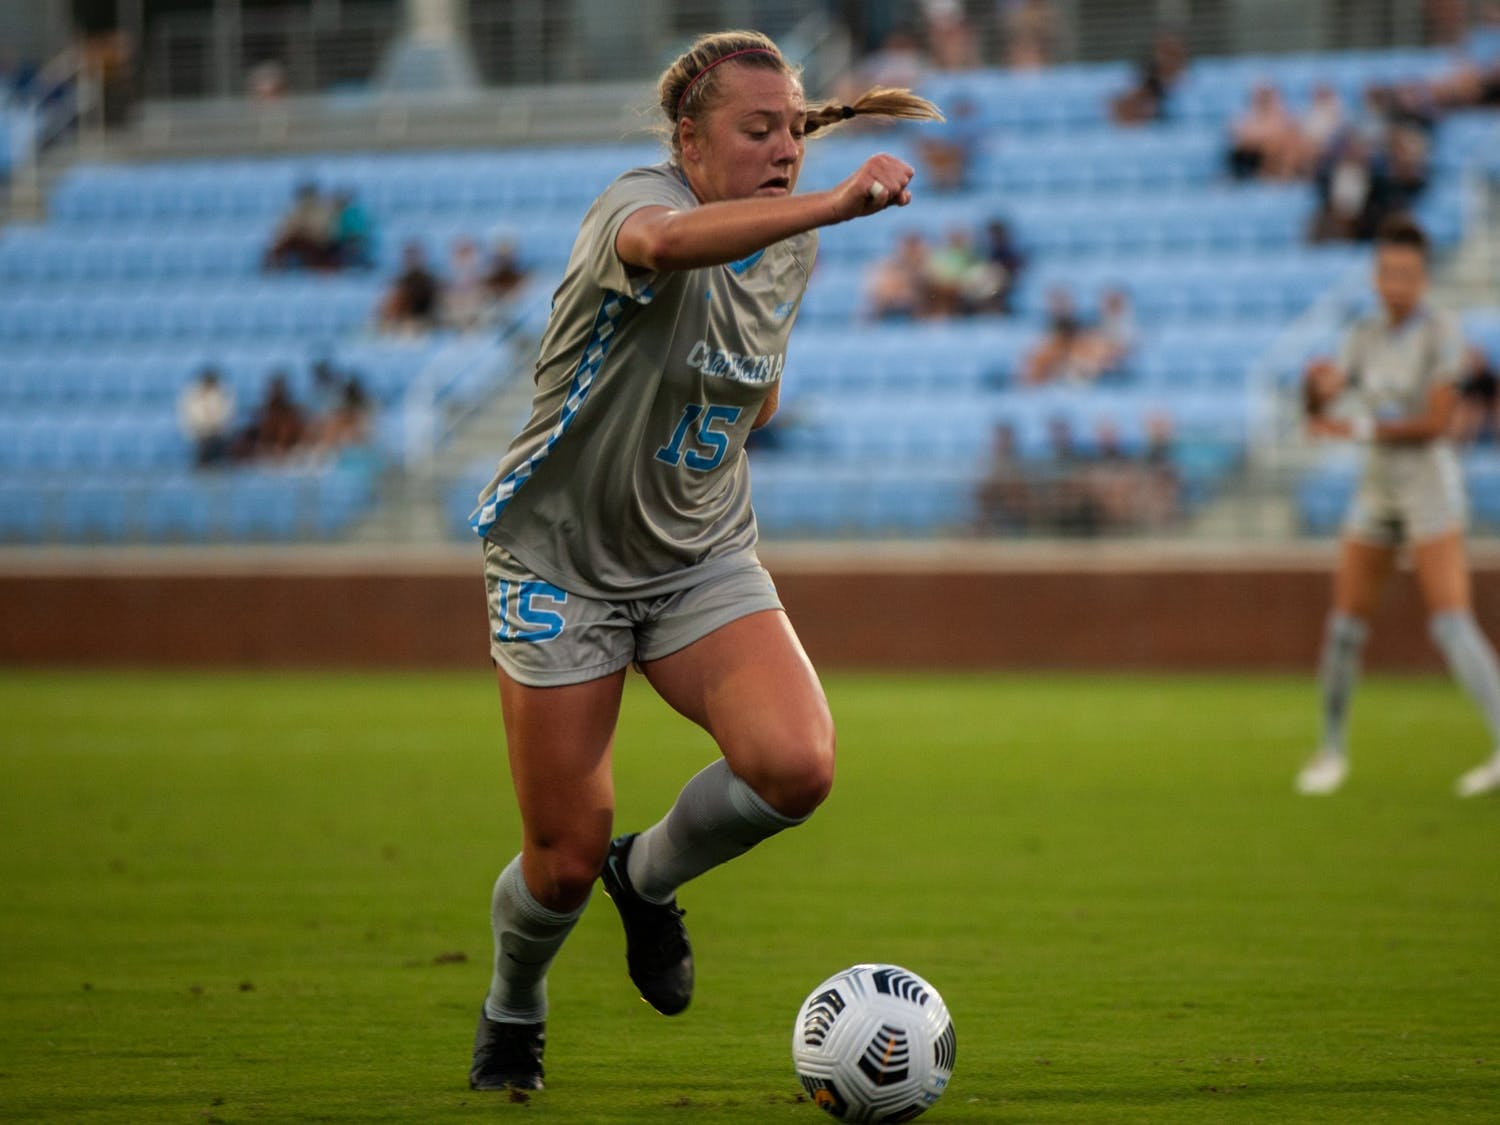 Sophomore forward/midfielder Avery Patterson (15) gears up to kick the ball down the field at the home game against Northwestern on Sept 2. UNC won 2-0.